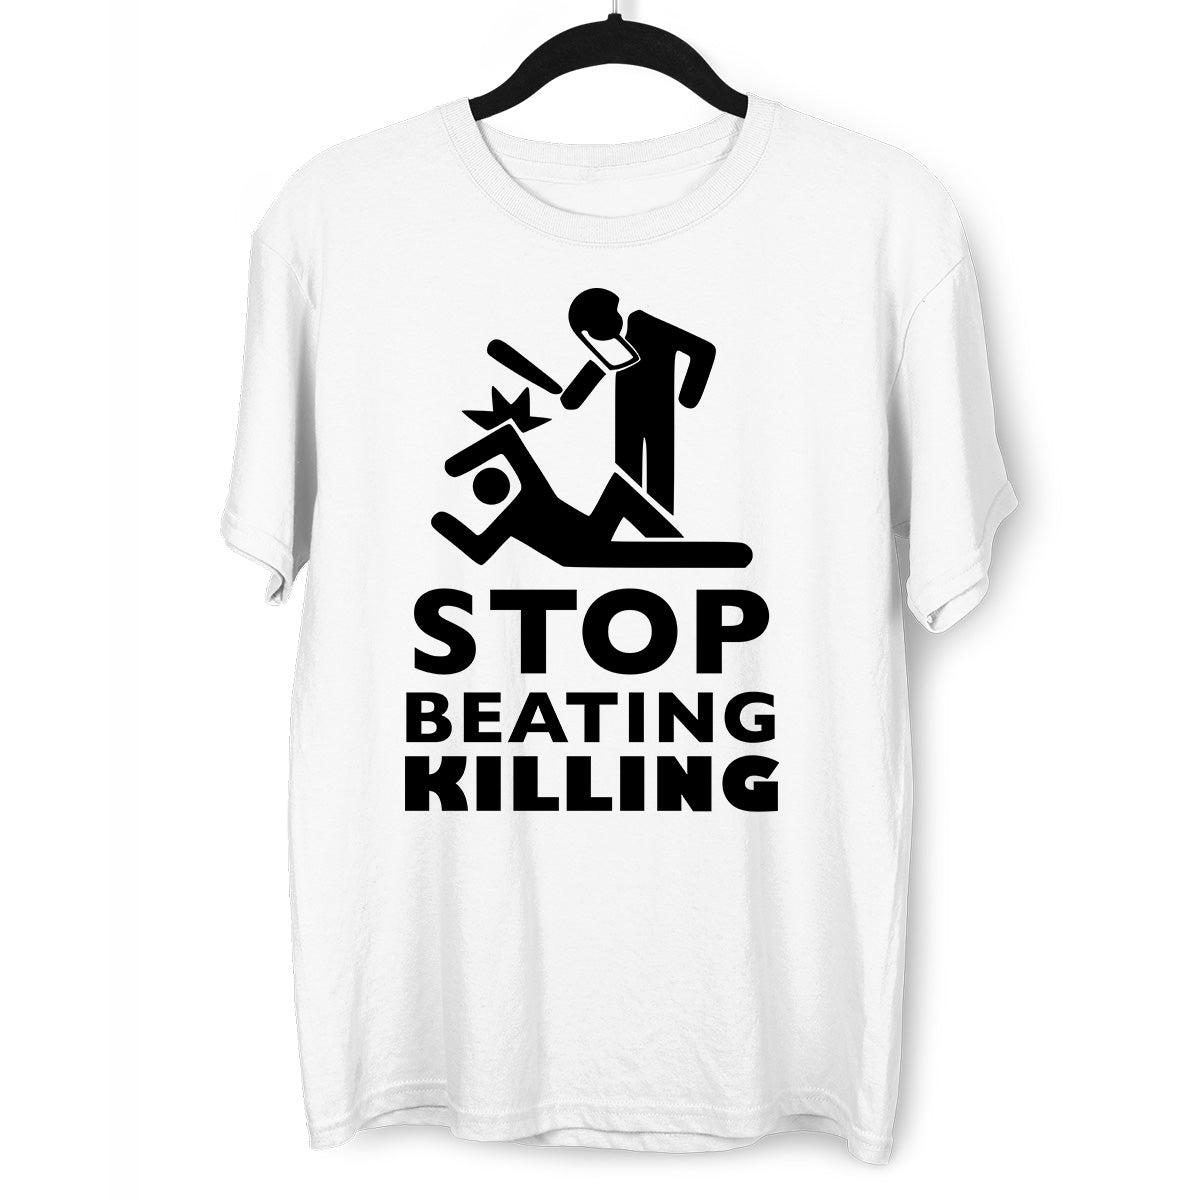 Stop beating killing Black lives matter White T-Shirt